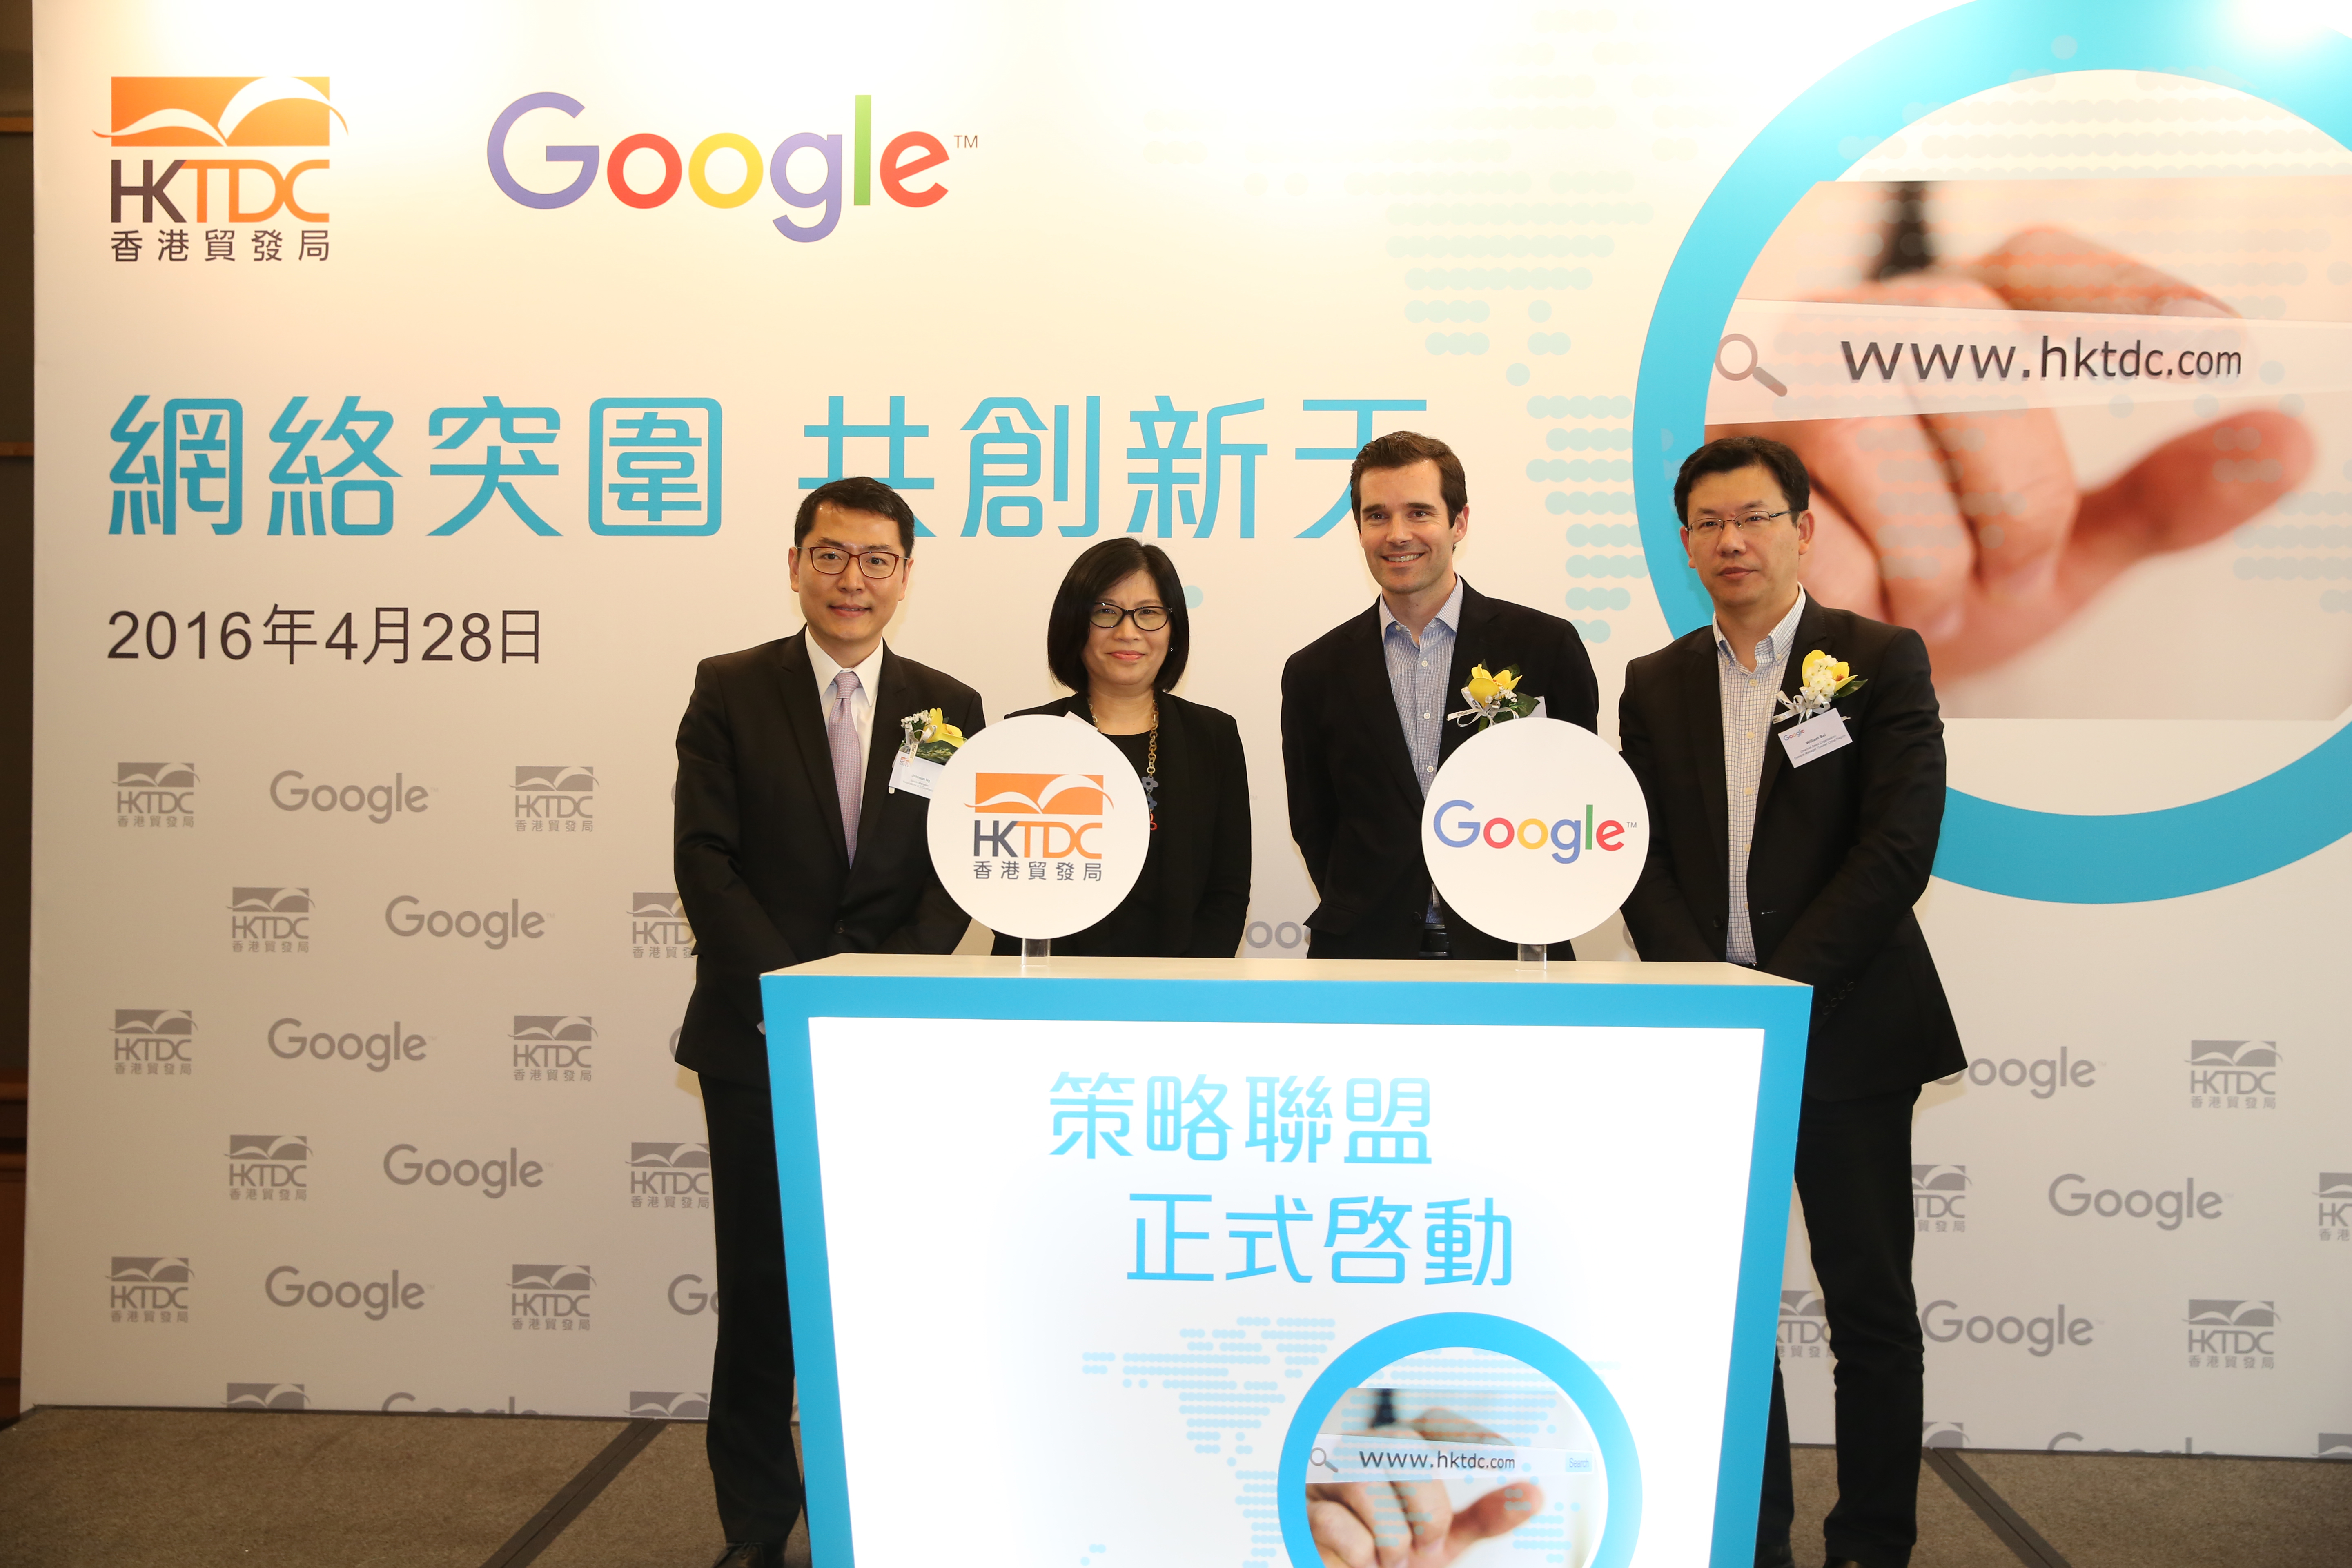 Loretta Wan, HKTDC Director of Publications & E-Commerce (centre left) and Dominic Allon, Managing Director, Google Hong Kong (centre right), officiate at the launch of the HKTDC-Google scheme to help suppliers promote their products and services overseas